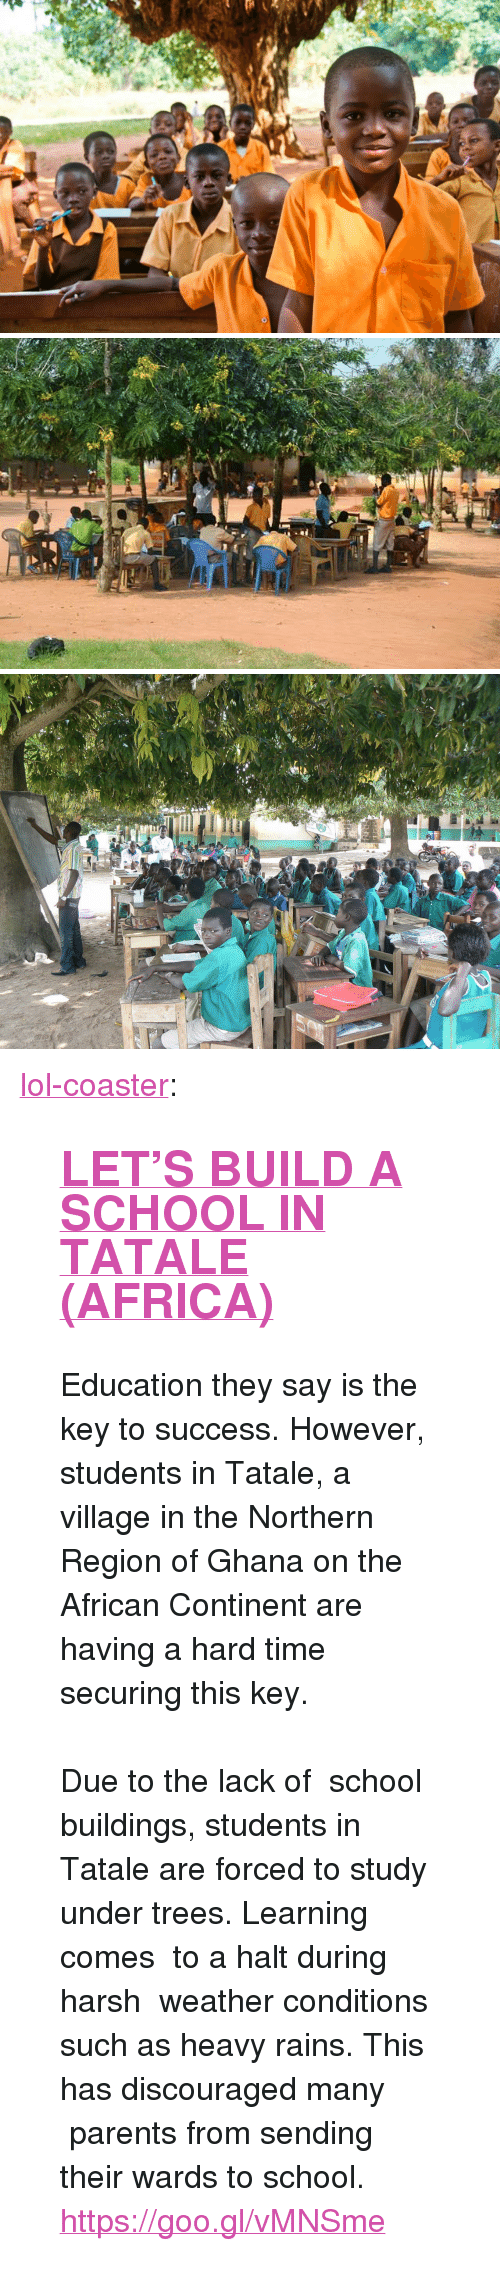 """key to success: <p><a href=""""http://lol-coaster.tumblr.com/post/154439636752/lets-build-a-school-in-tatale-africa"""" class=""""tumblr_blog"""">lol-coaster</a>:</p><blockquote> <h2><a href=""""https://goo.gl/vMNSme"""">  LET'S BUILD A SCHOOL IN TATALE (AFRICA)</a></h2> <p>  Education they say is the key to success. However, students in Tatale, a village in the Northern Region of Ghana on the African Continent are having a hard time securing this key.<br/><br/>Due to the lack of school buildings, students in Tatale are forced to study under trees. Learning comes to a halt during harsh weather conditions such as heavy rains. This has discouraged many parents from sending their wards to school.   <br/></p> <p><a href=""""https://goo.gl/vMNSme"""">https://goo.gl/vMNSme</a><br/></p> </blockquote>"""